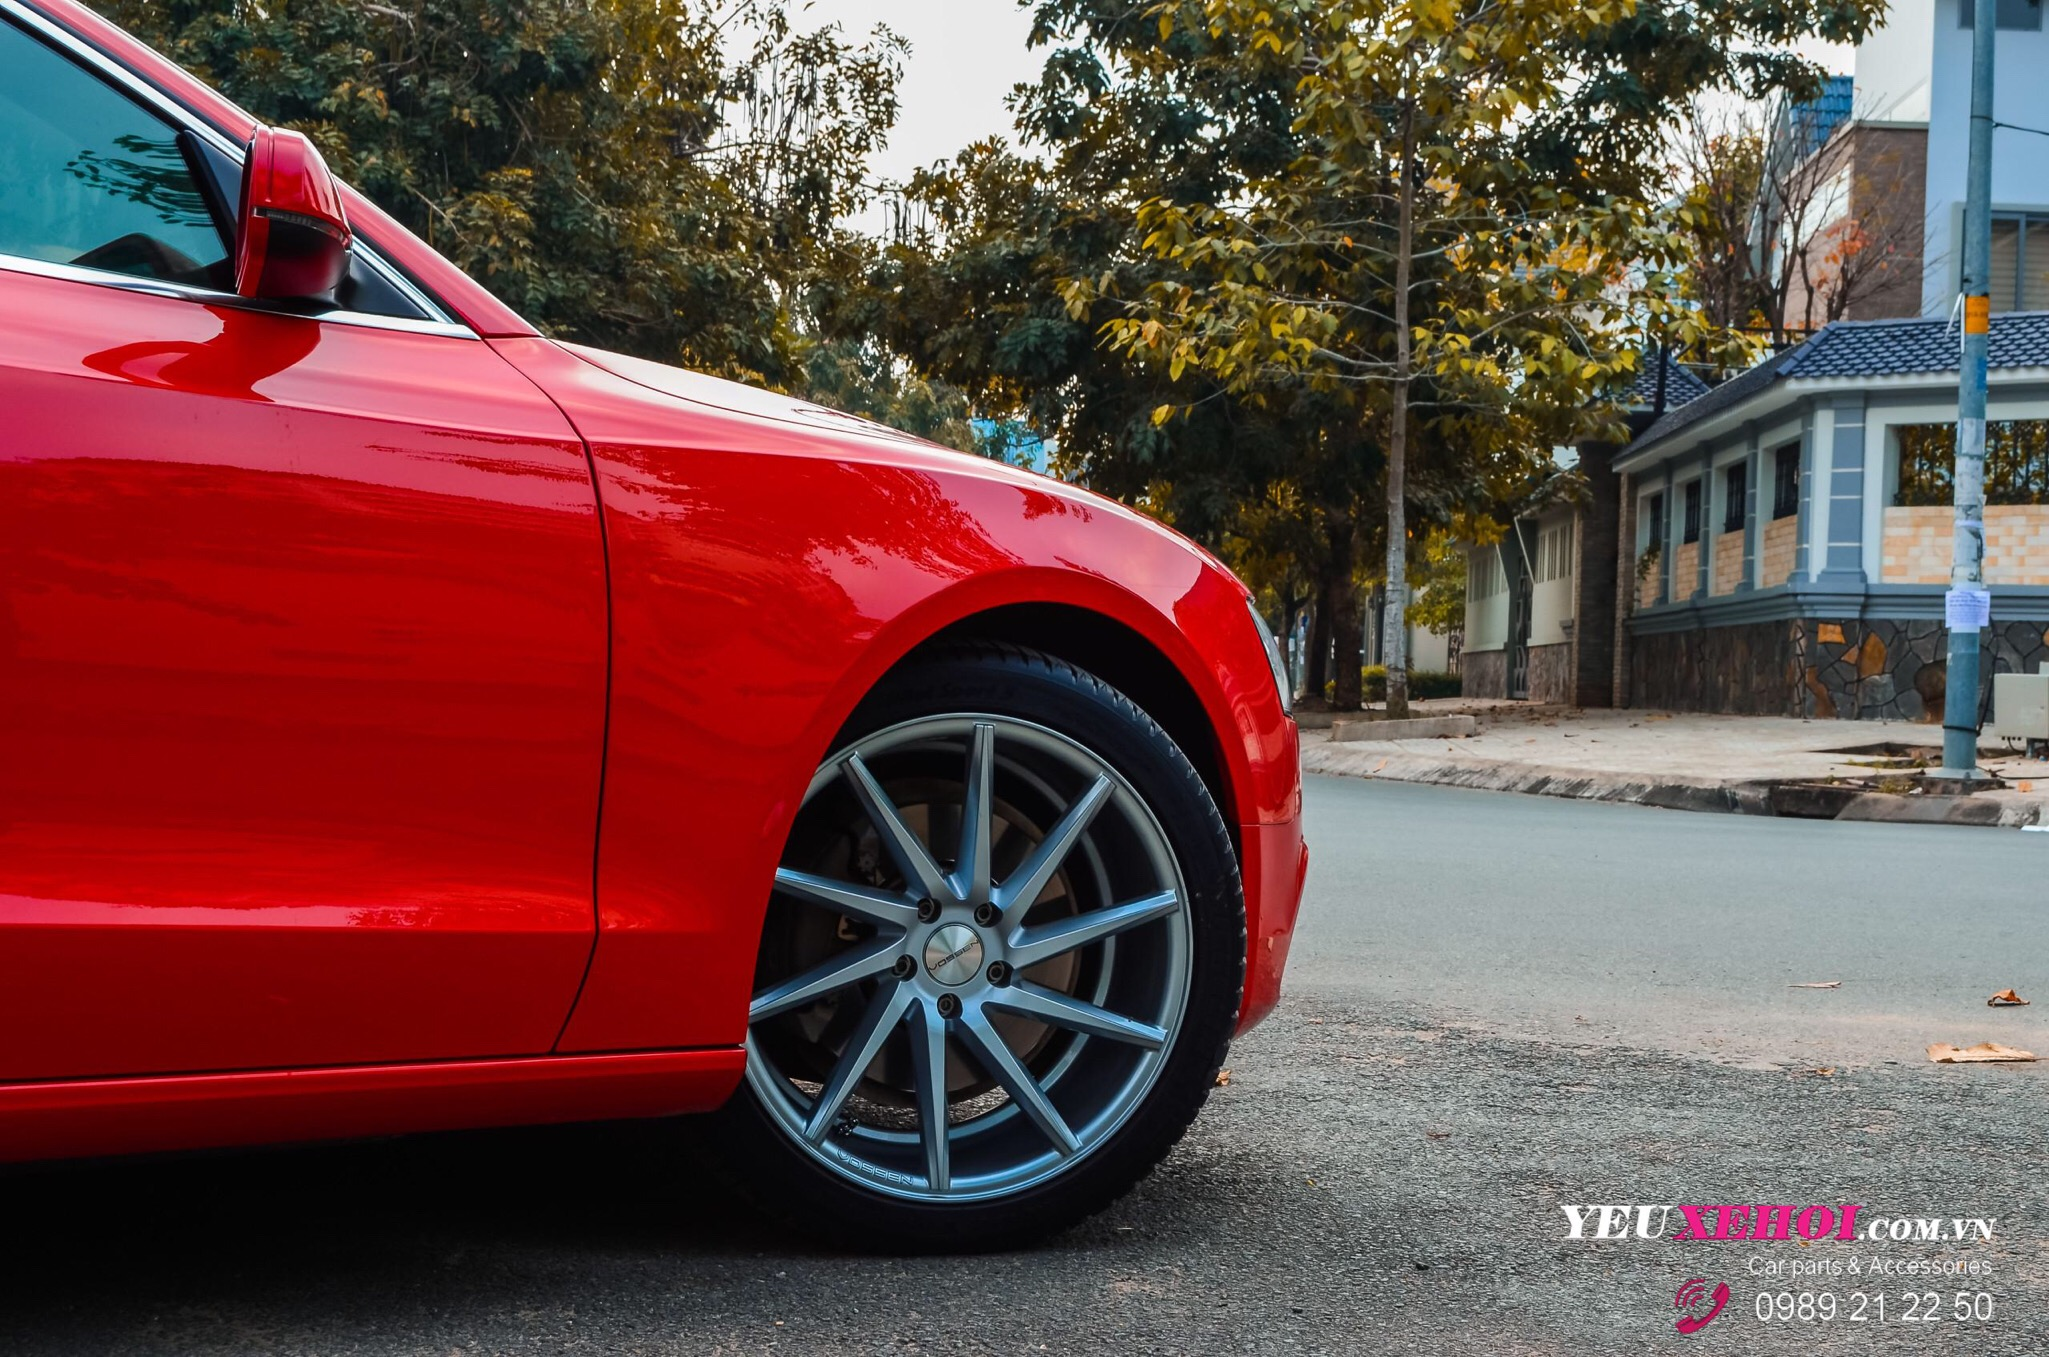 USA VOSSEN WHEEL / AUDI A5 / 19 INCHES